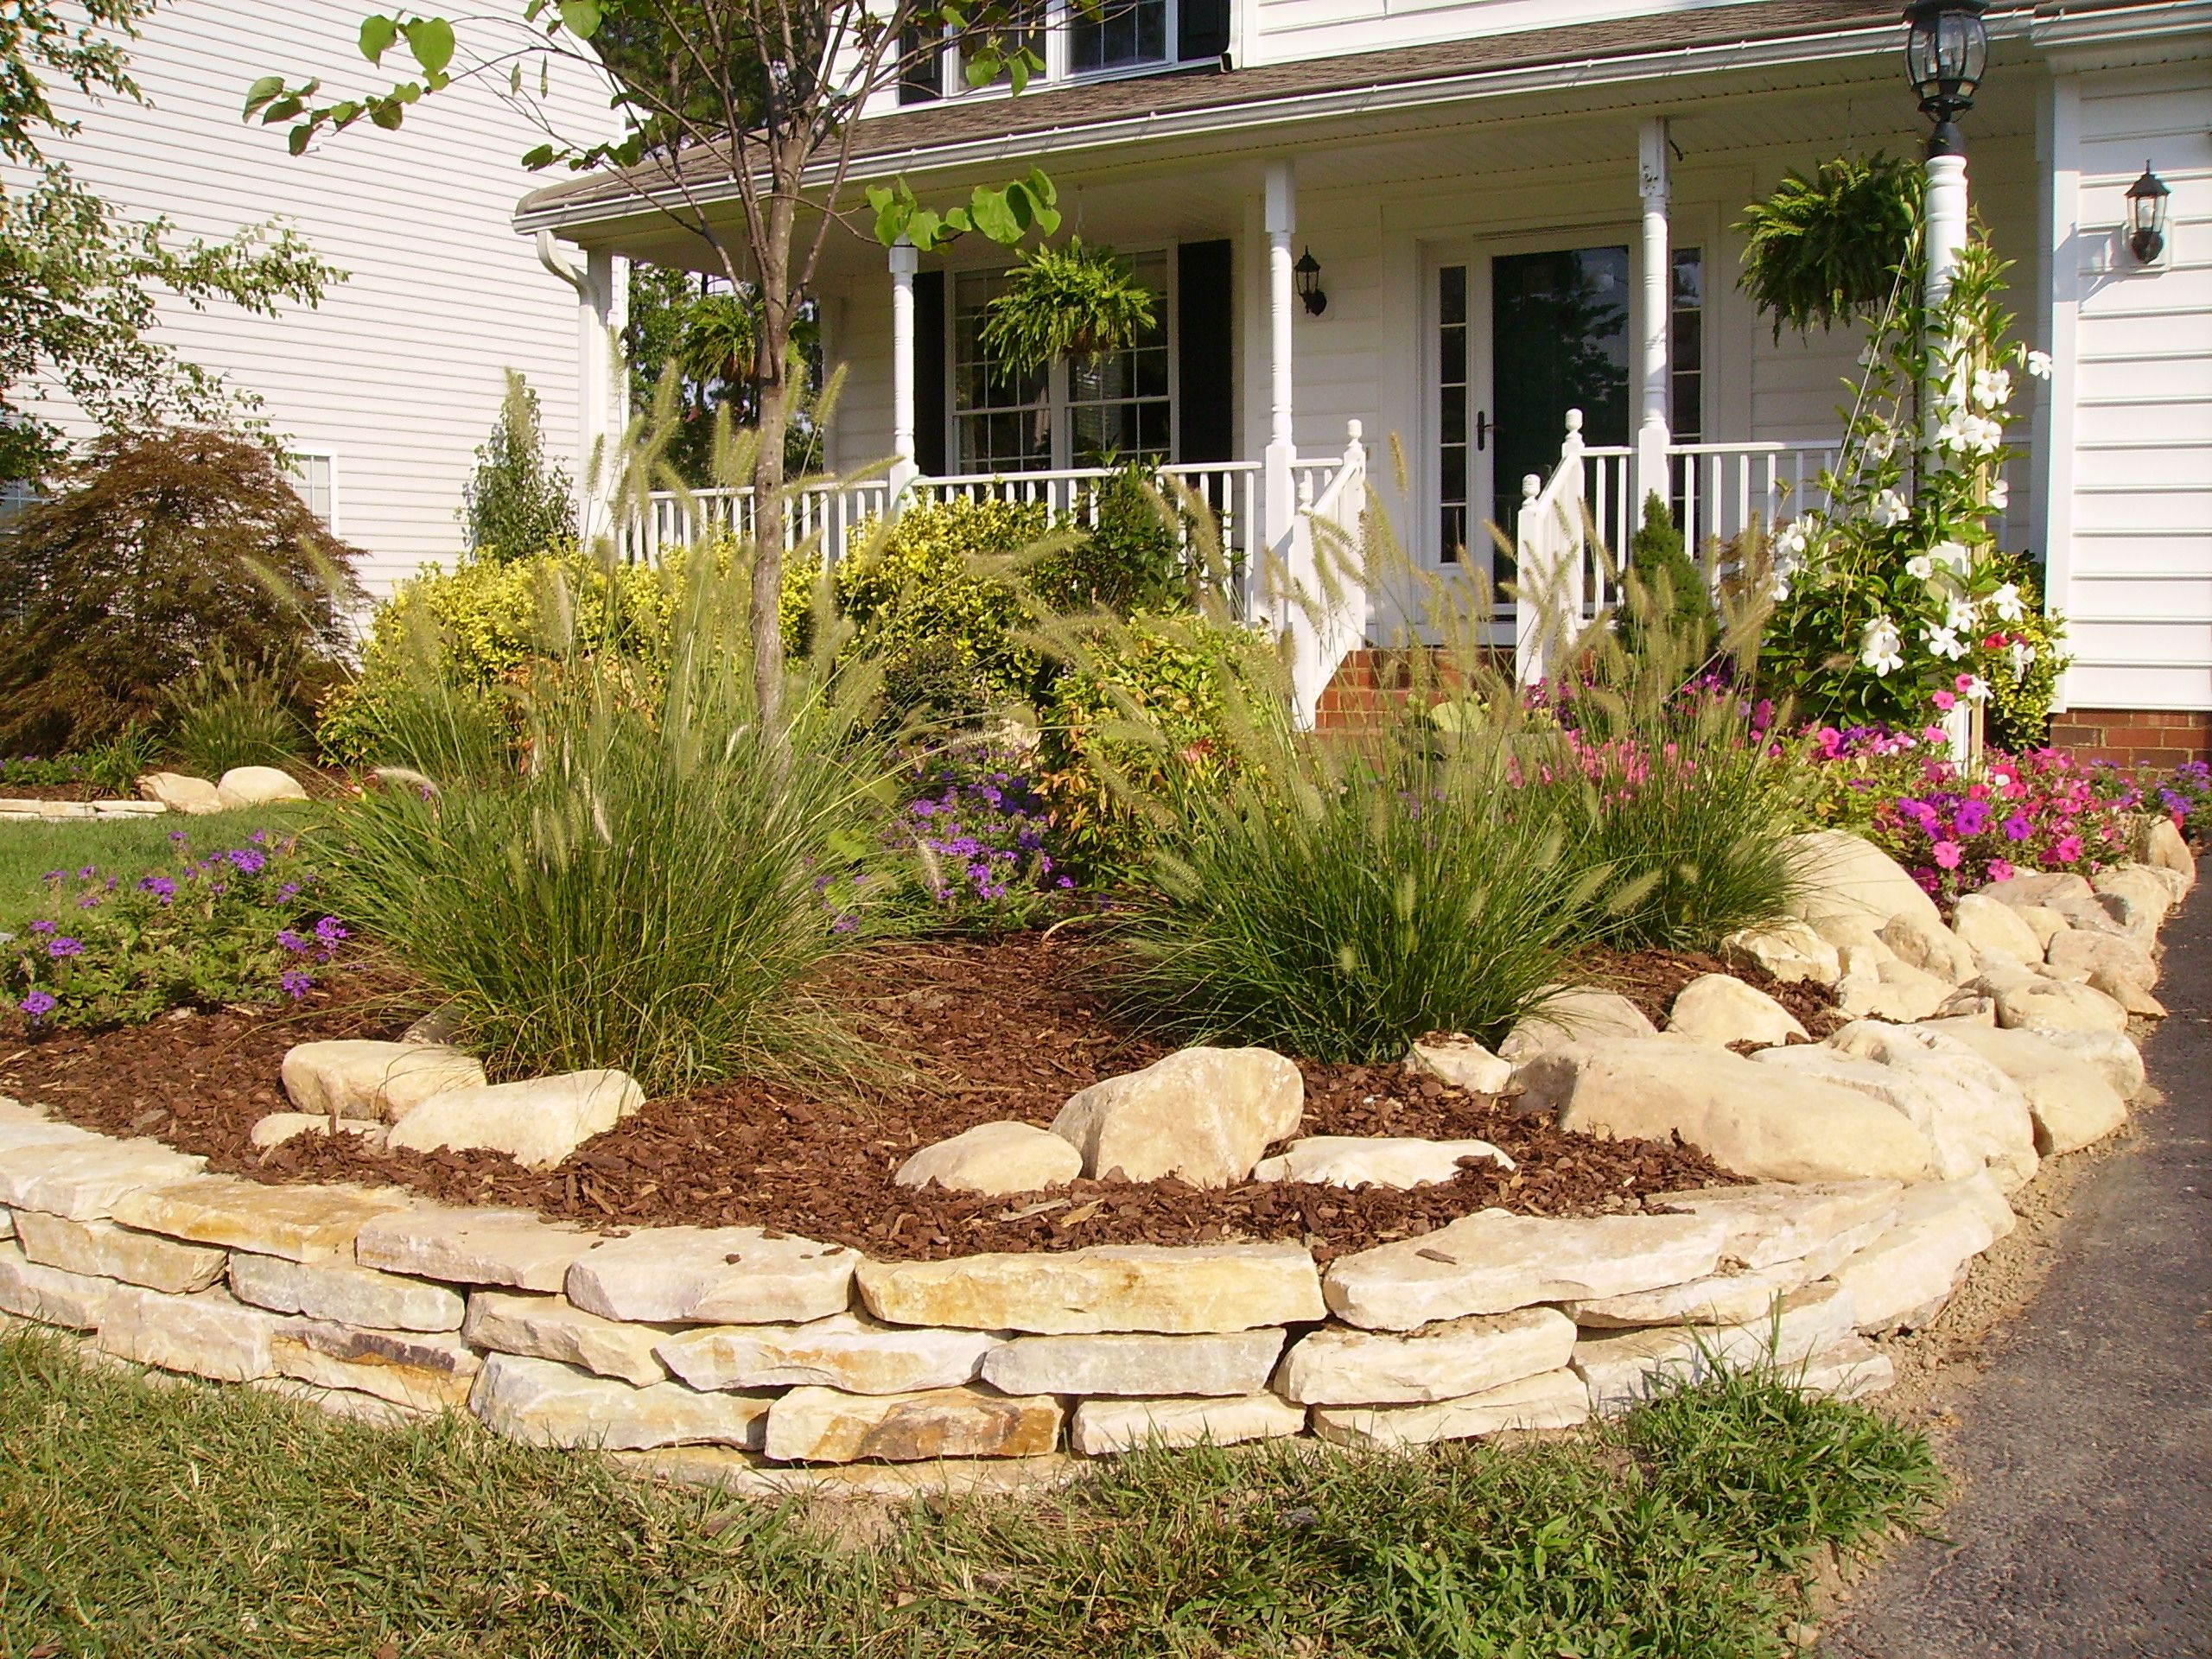 In this photo the stacked stone is edging the flowerbed for Making a rock garden border